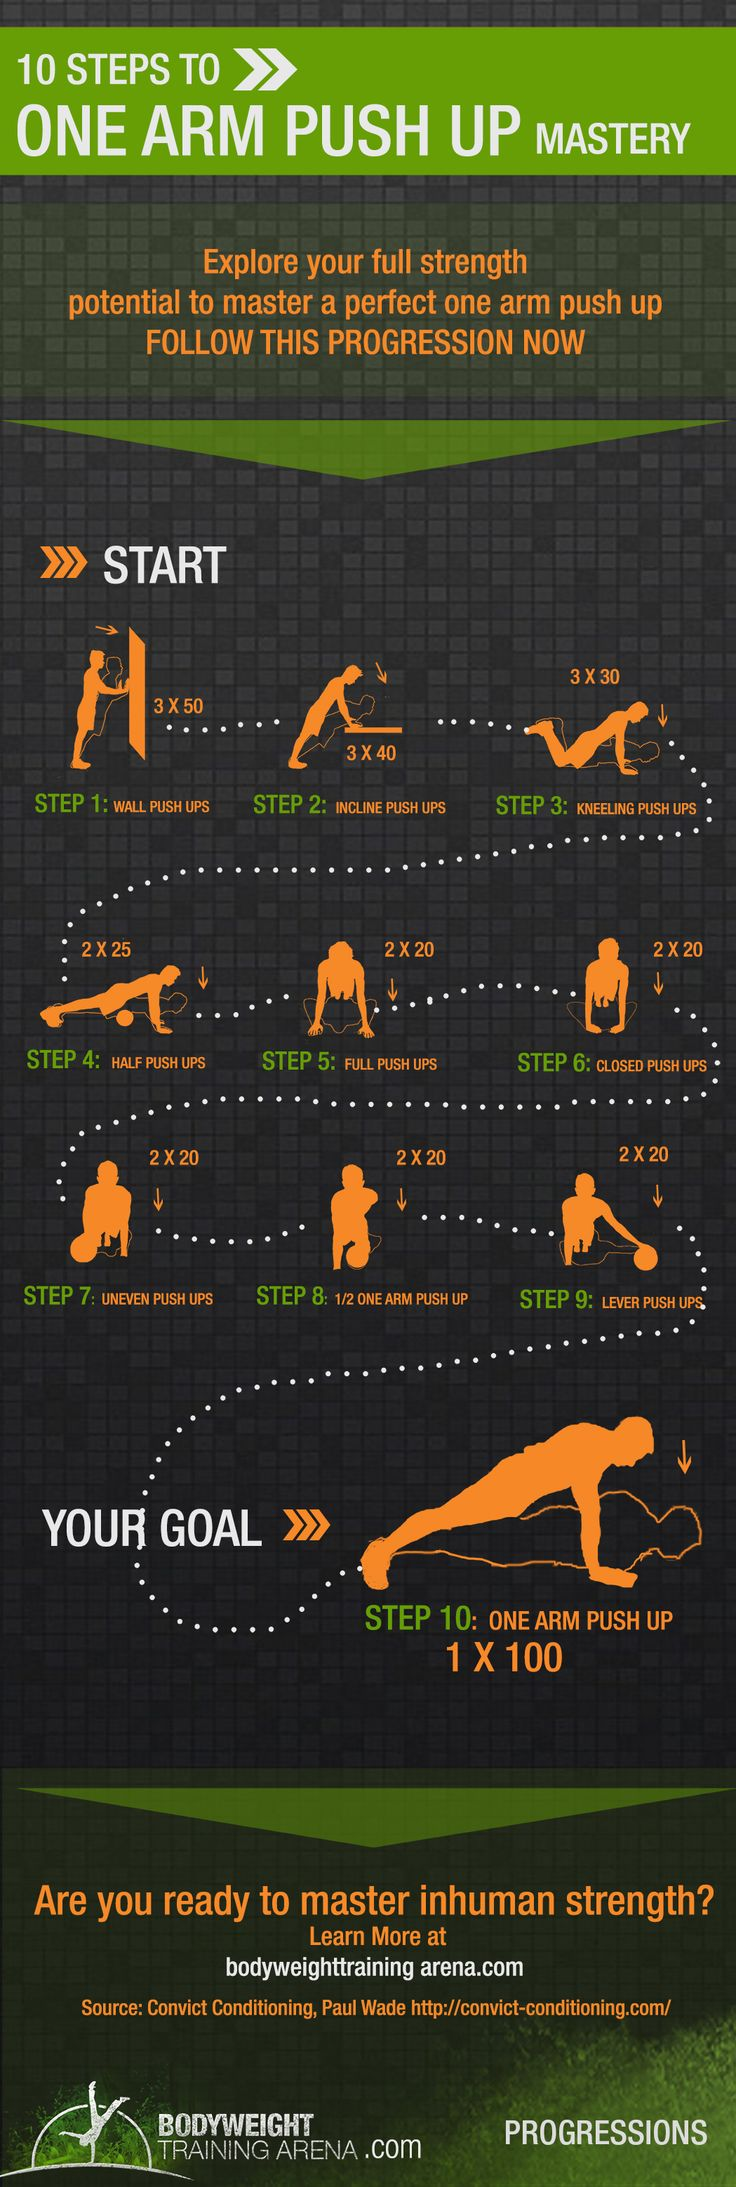 Convict Conditioning Push Up Progression